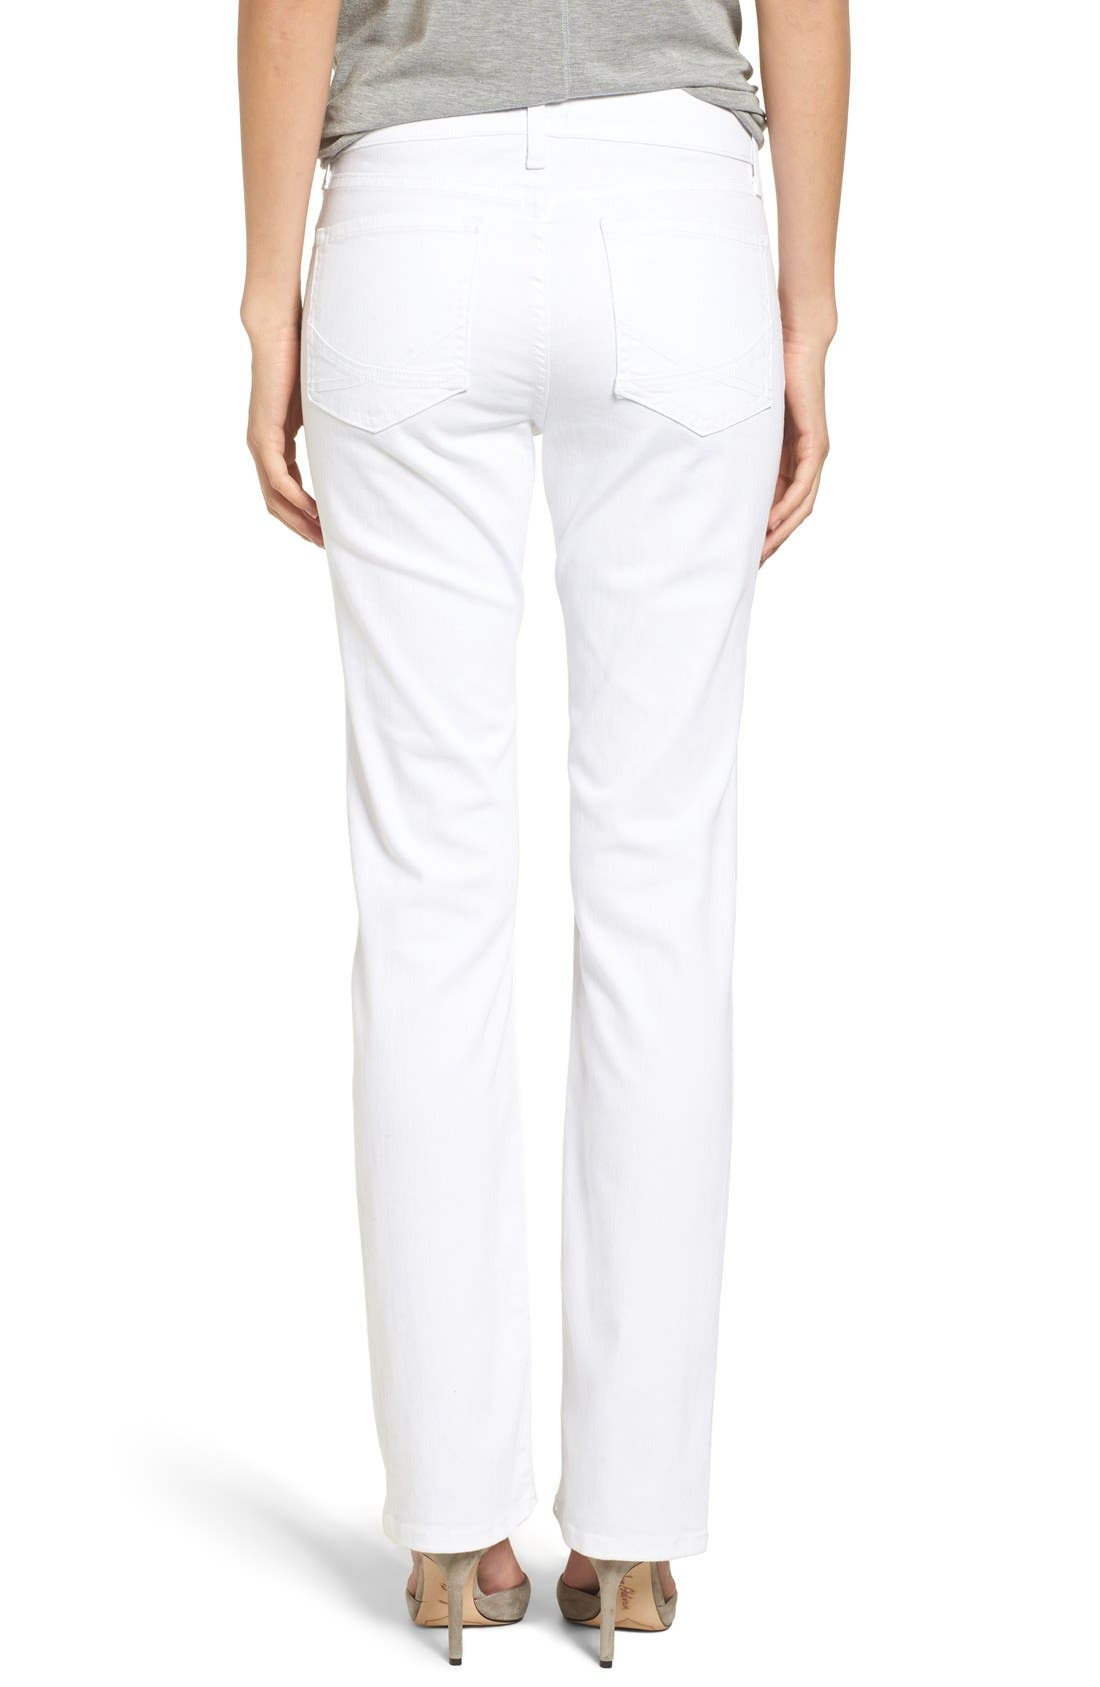 Marilyn Stretch Straight Leg Jeans,                             Alternate thumbnail 3, color,                             103